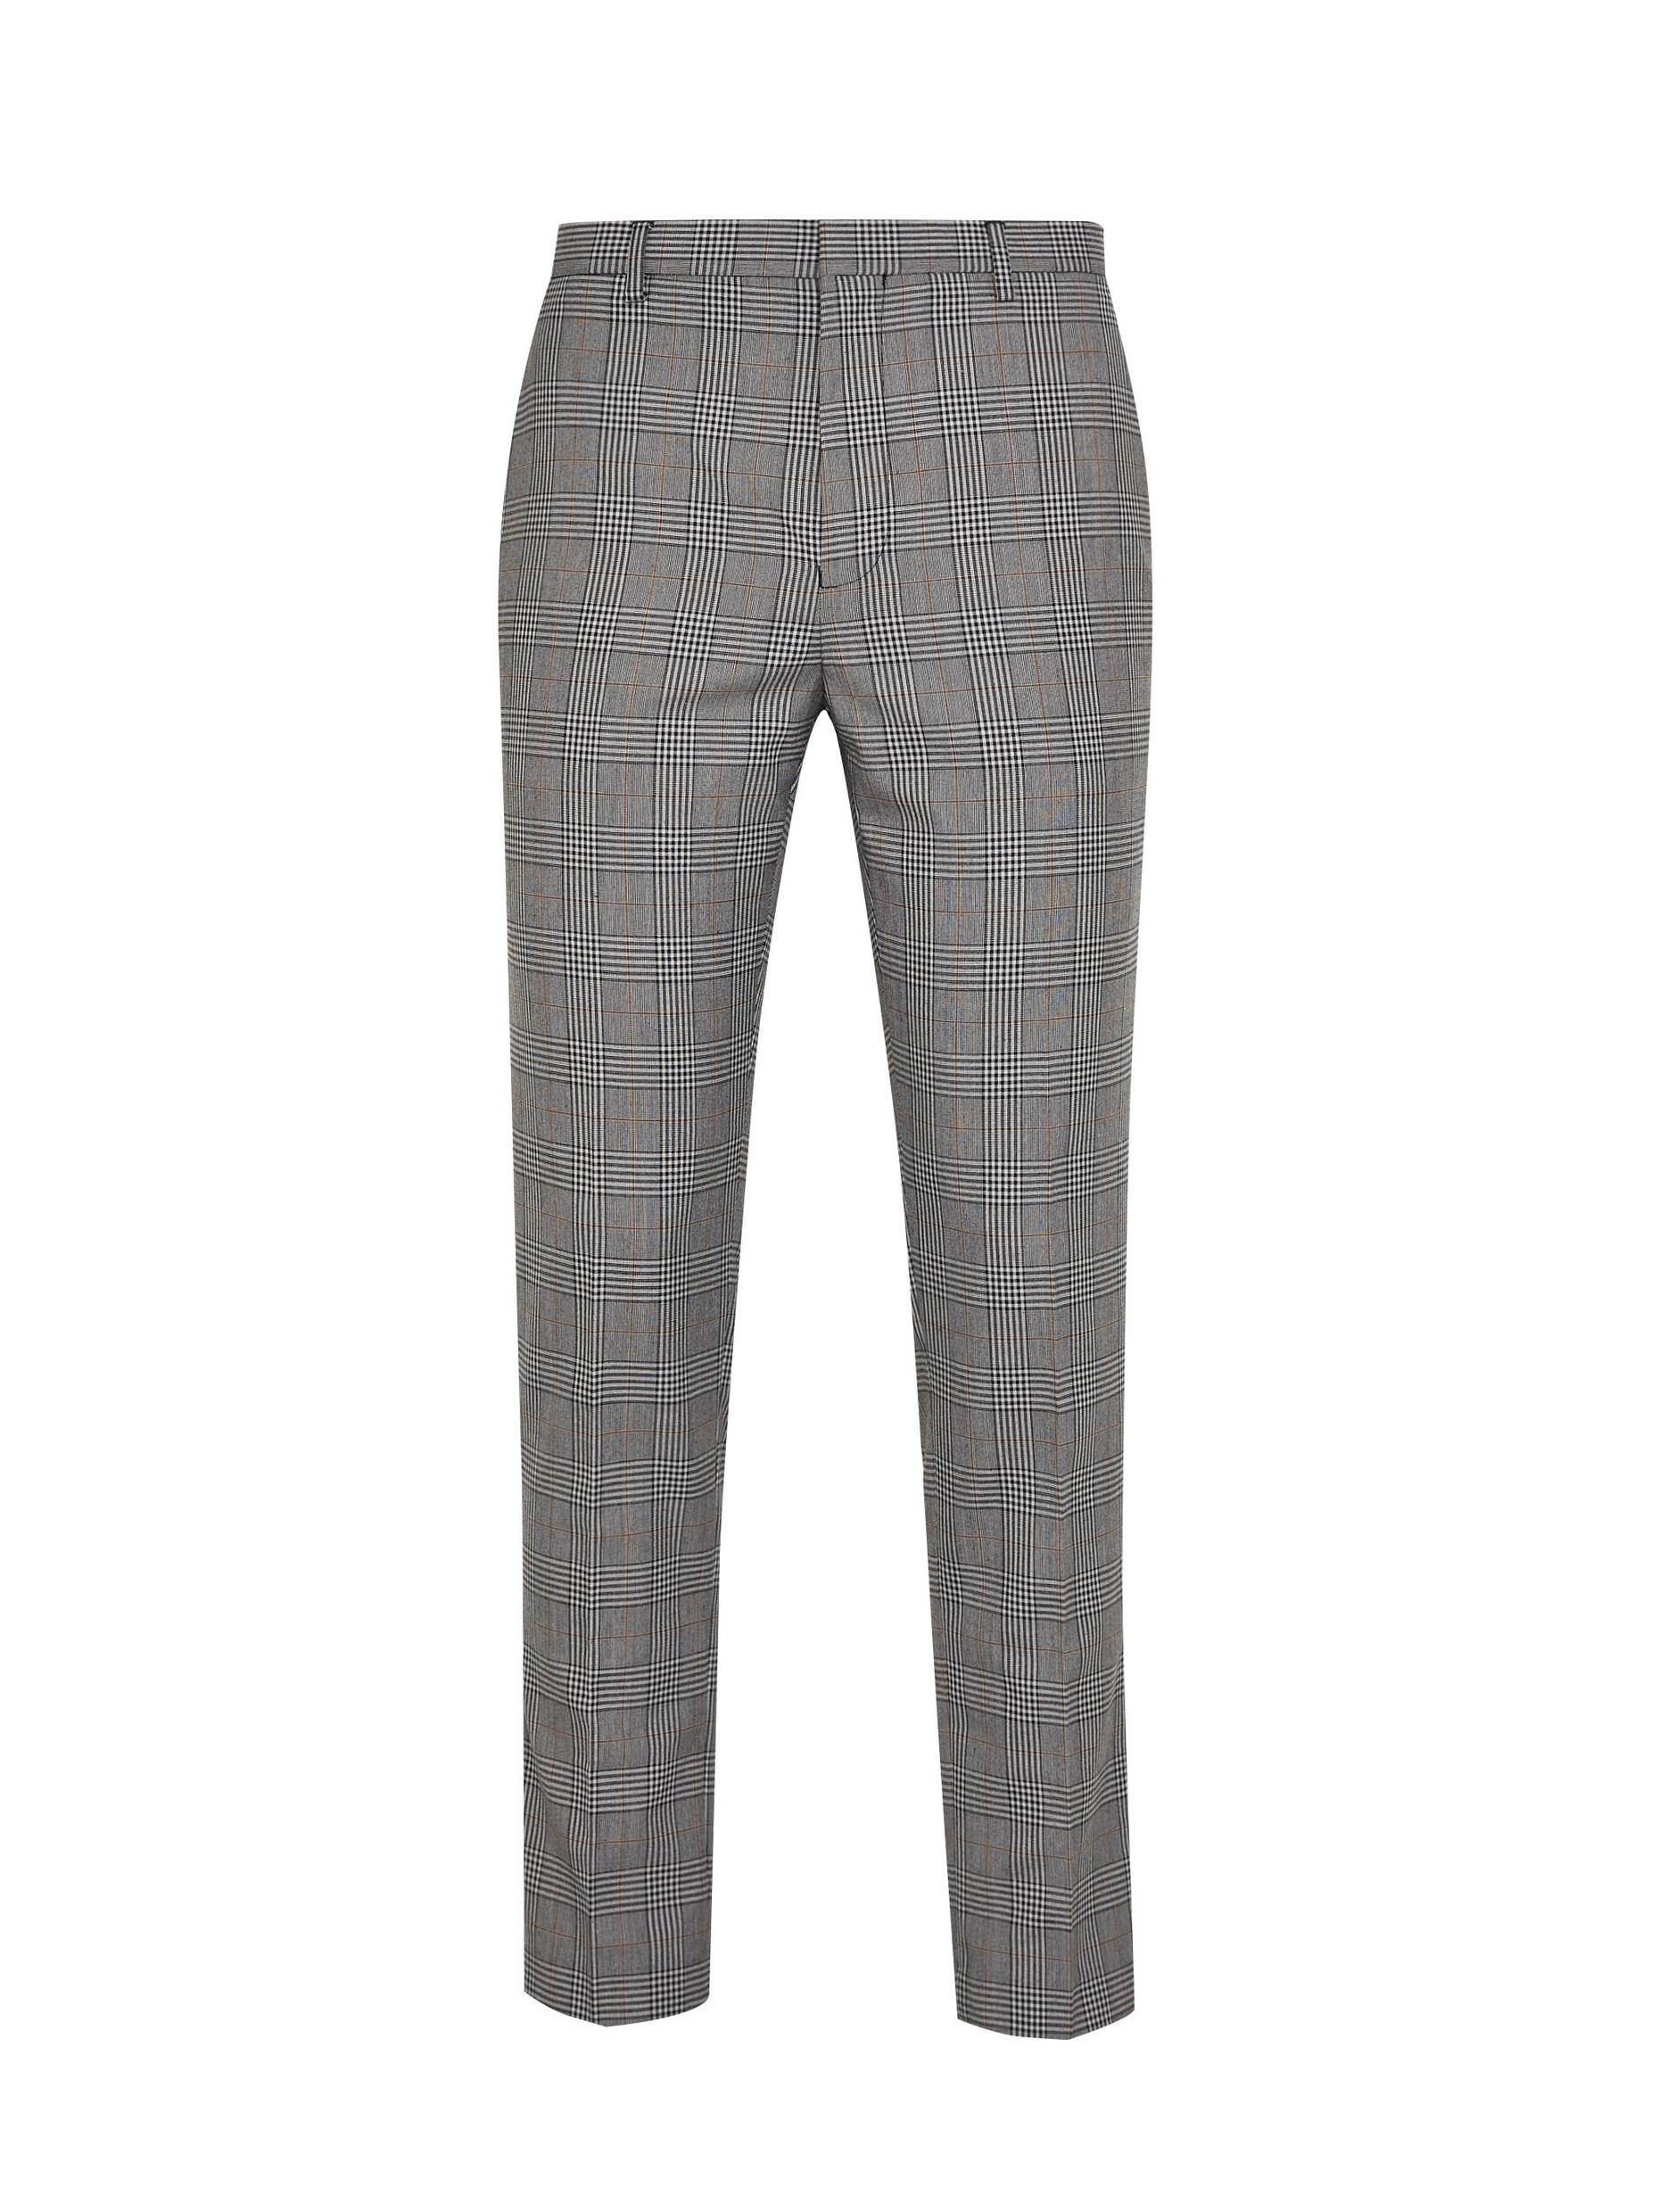 Charcoal Skinny Check Trousers